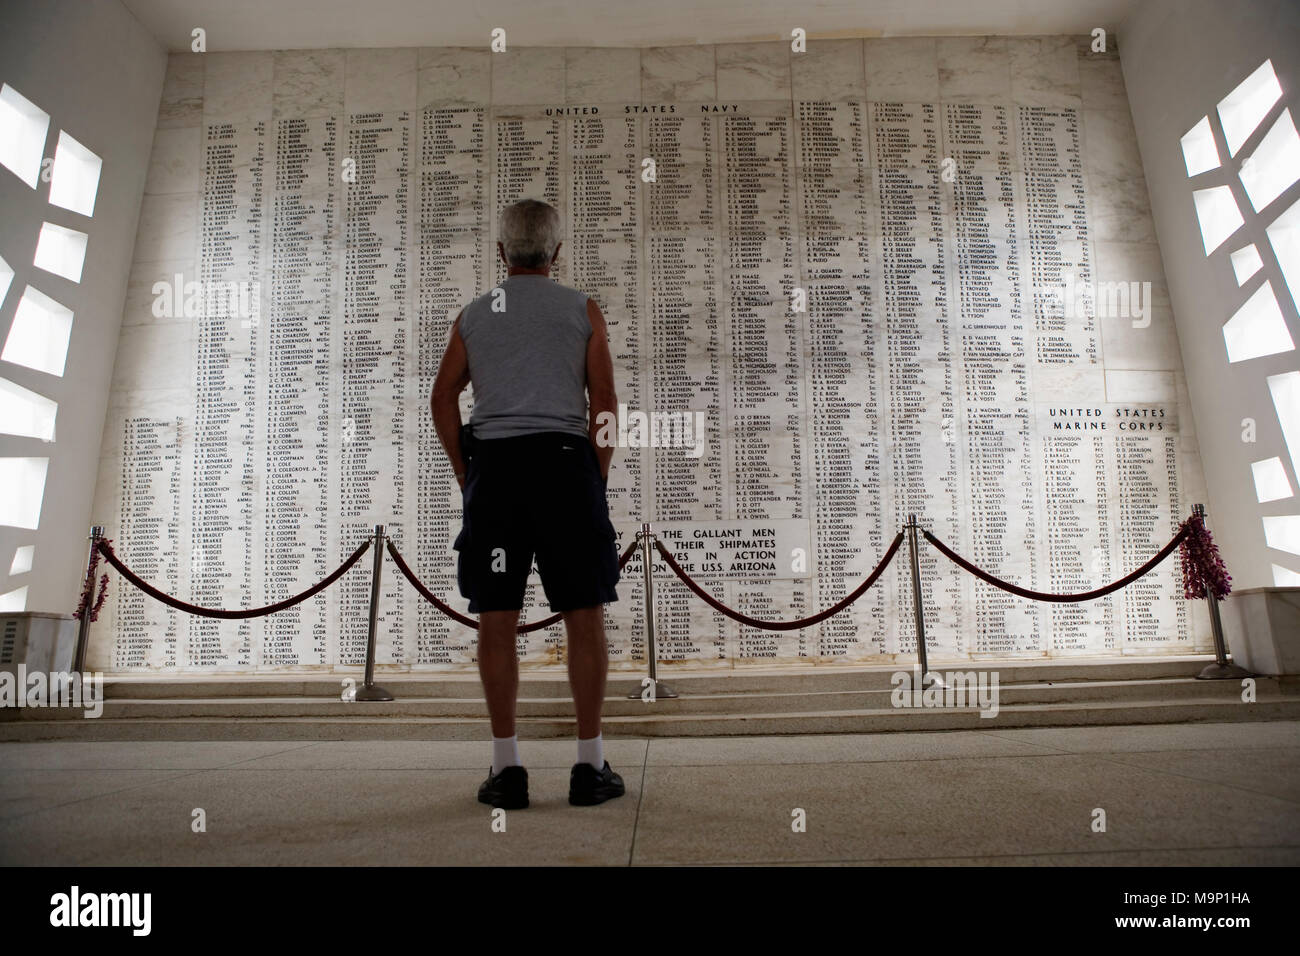 Rear view of a man standing in the shrine room, where the names of those killed on the USS Arizona are engraved on the marble wall. The USS Arizona Memorial at Pearl Harbor, Honolulu, Hawaii is final resting place for many of the ship's 1,177 crewmen who lost their lives on December 7, 1941. - Stock Image